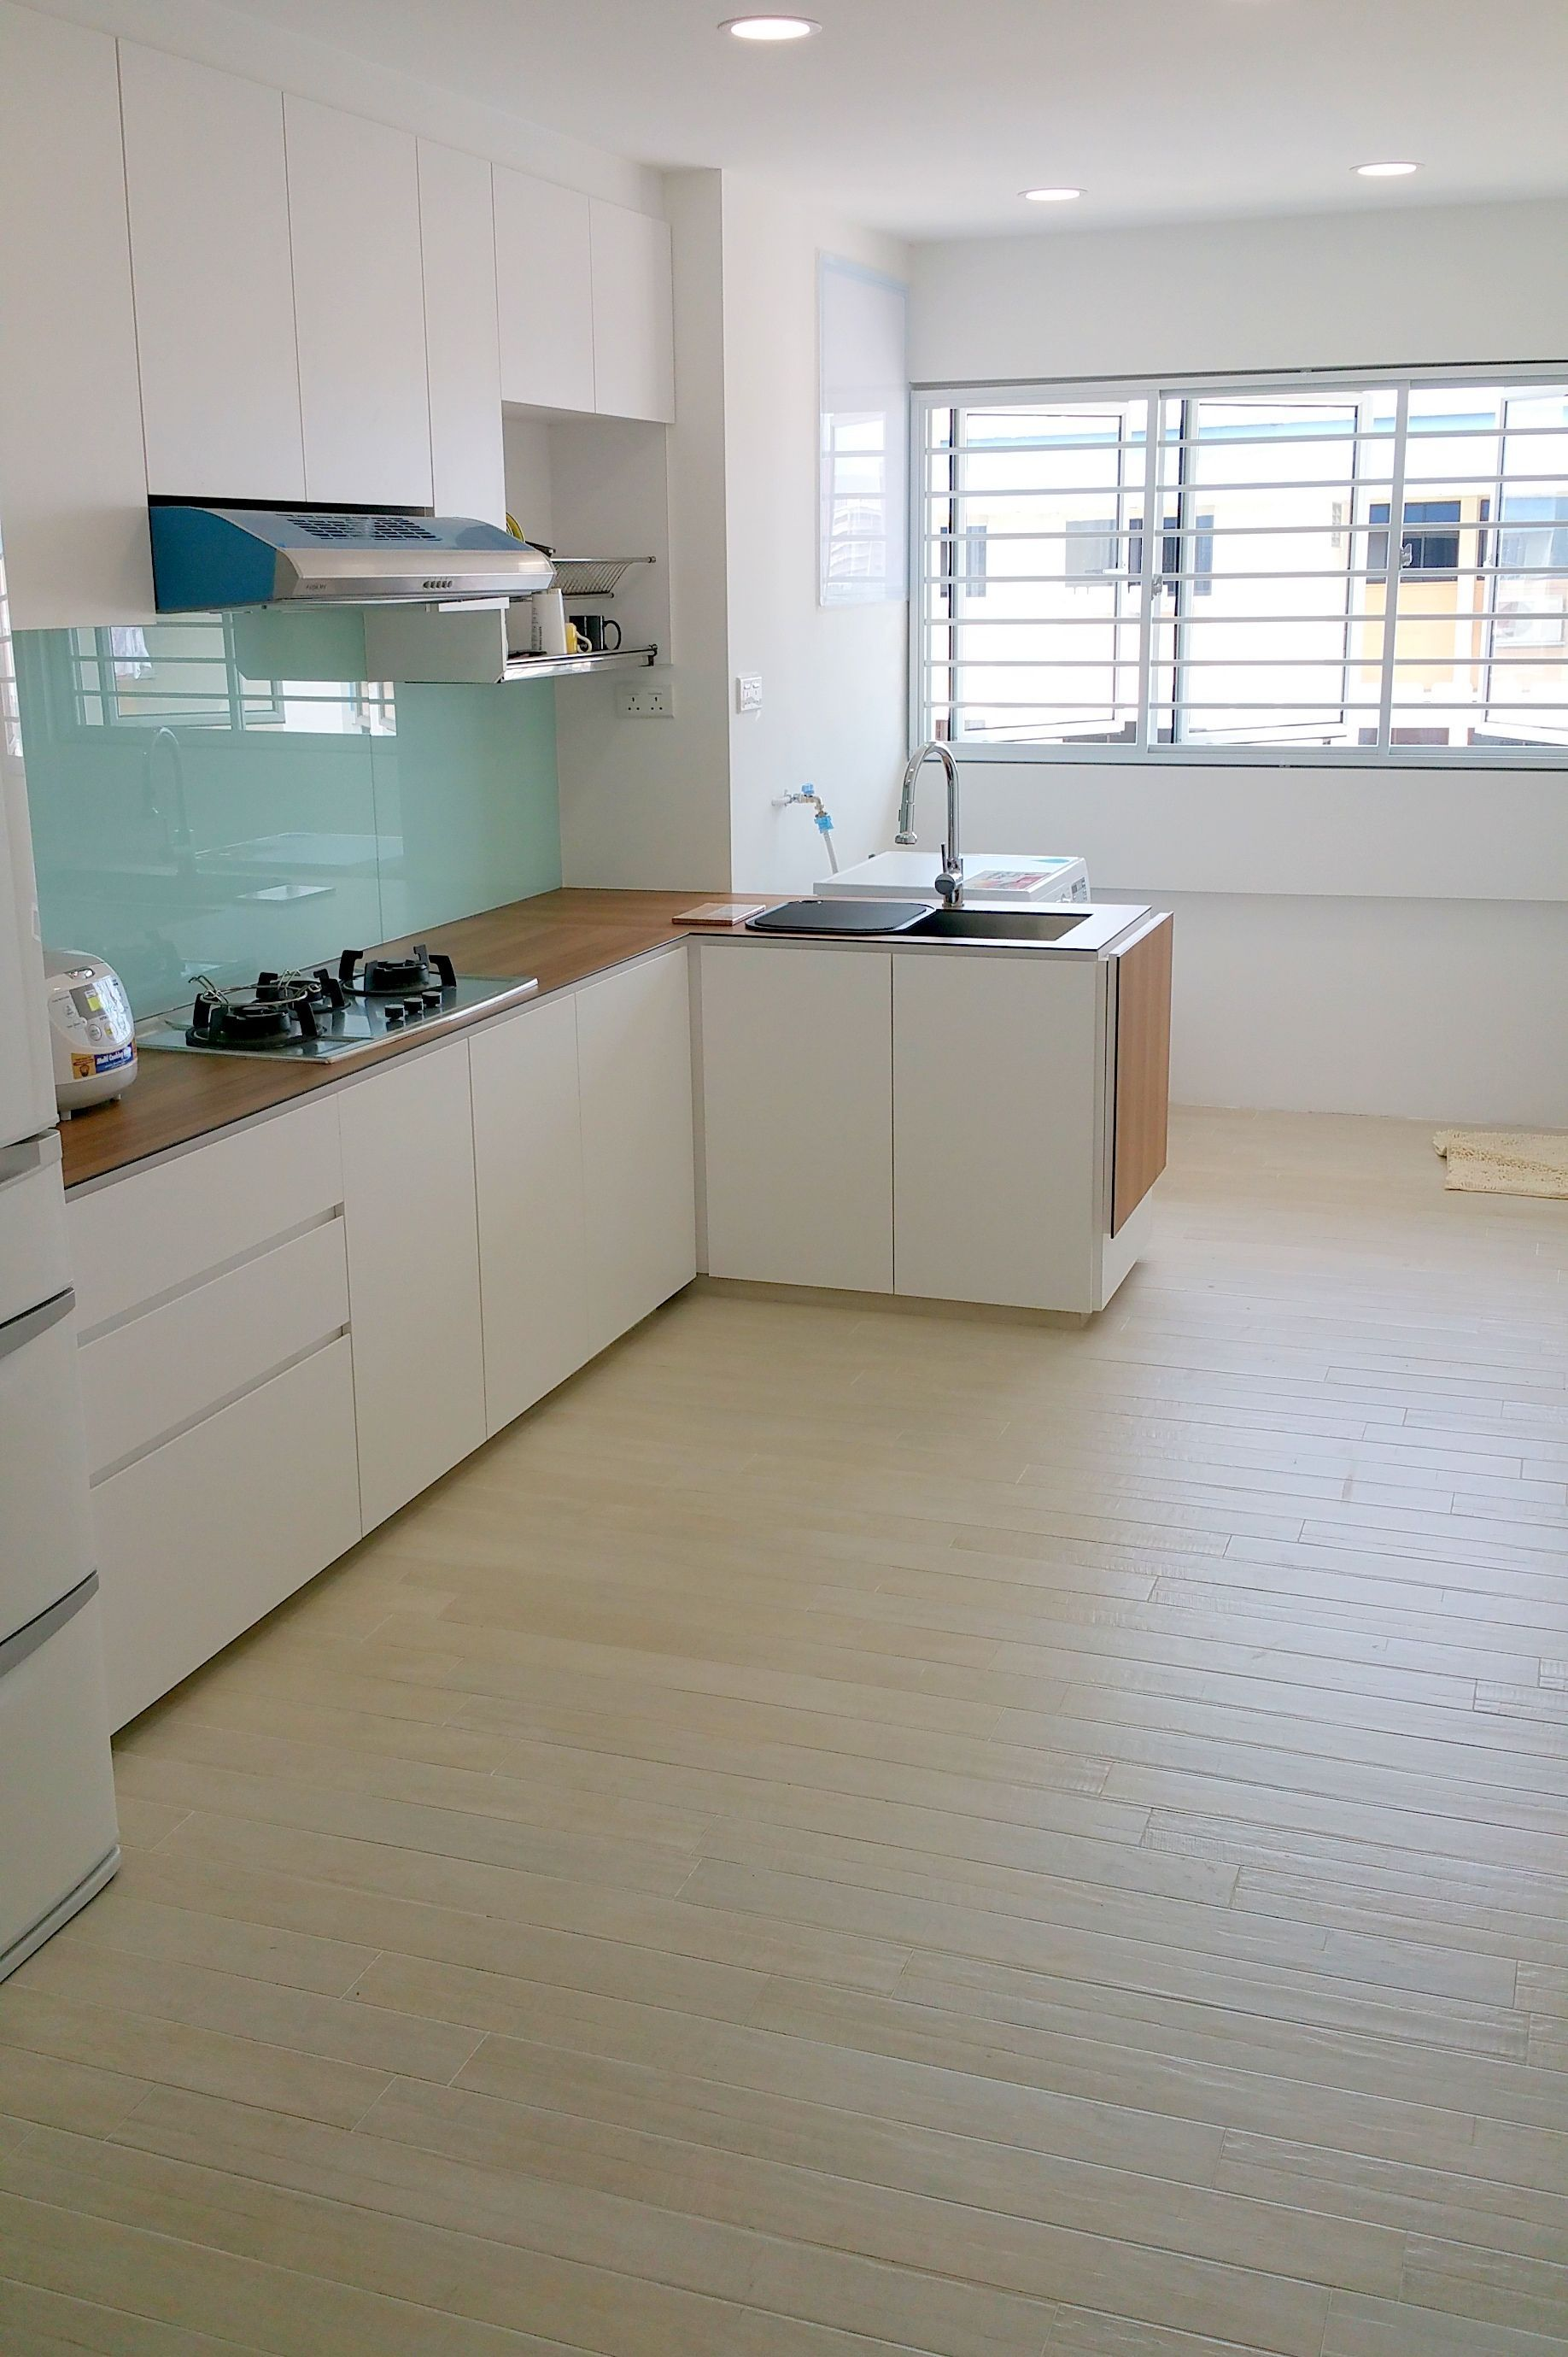 3 Room Hdb Kitchen: Inspirations And Ideas For My Own 3